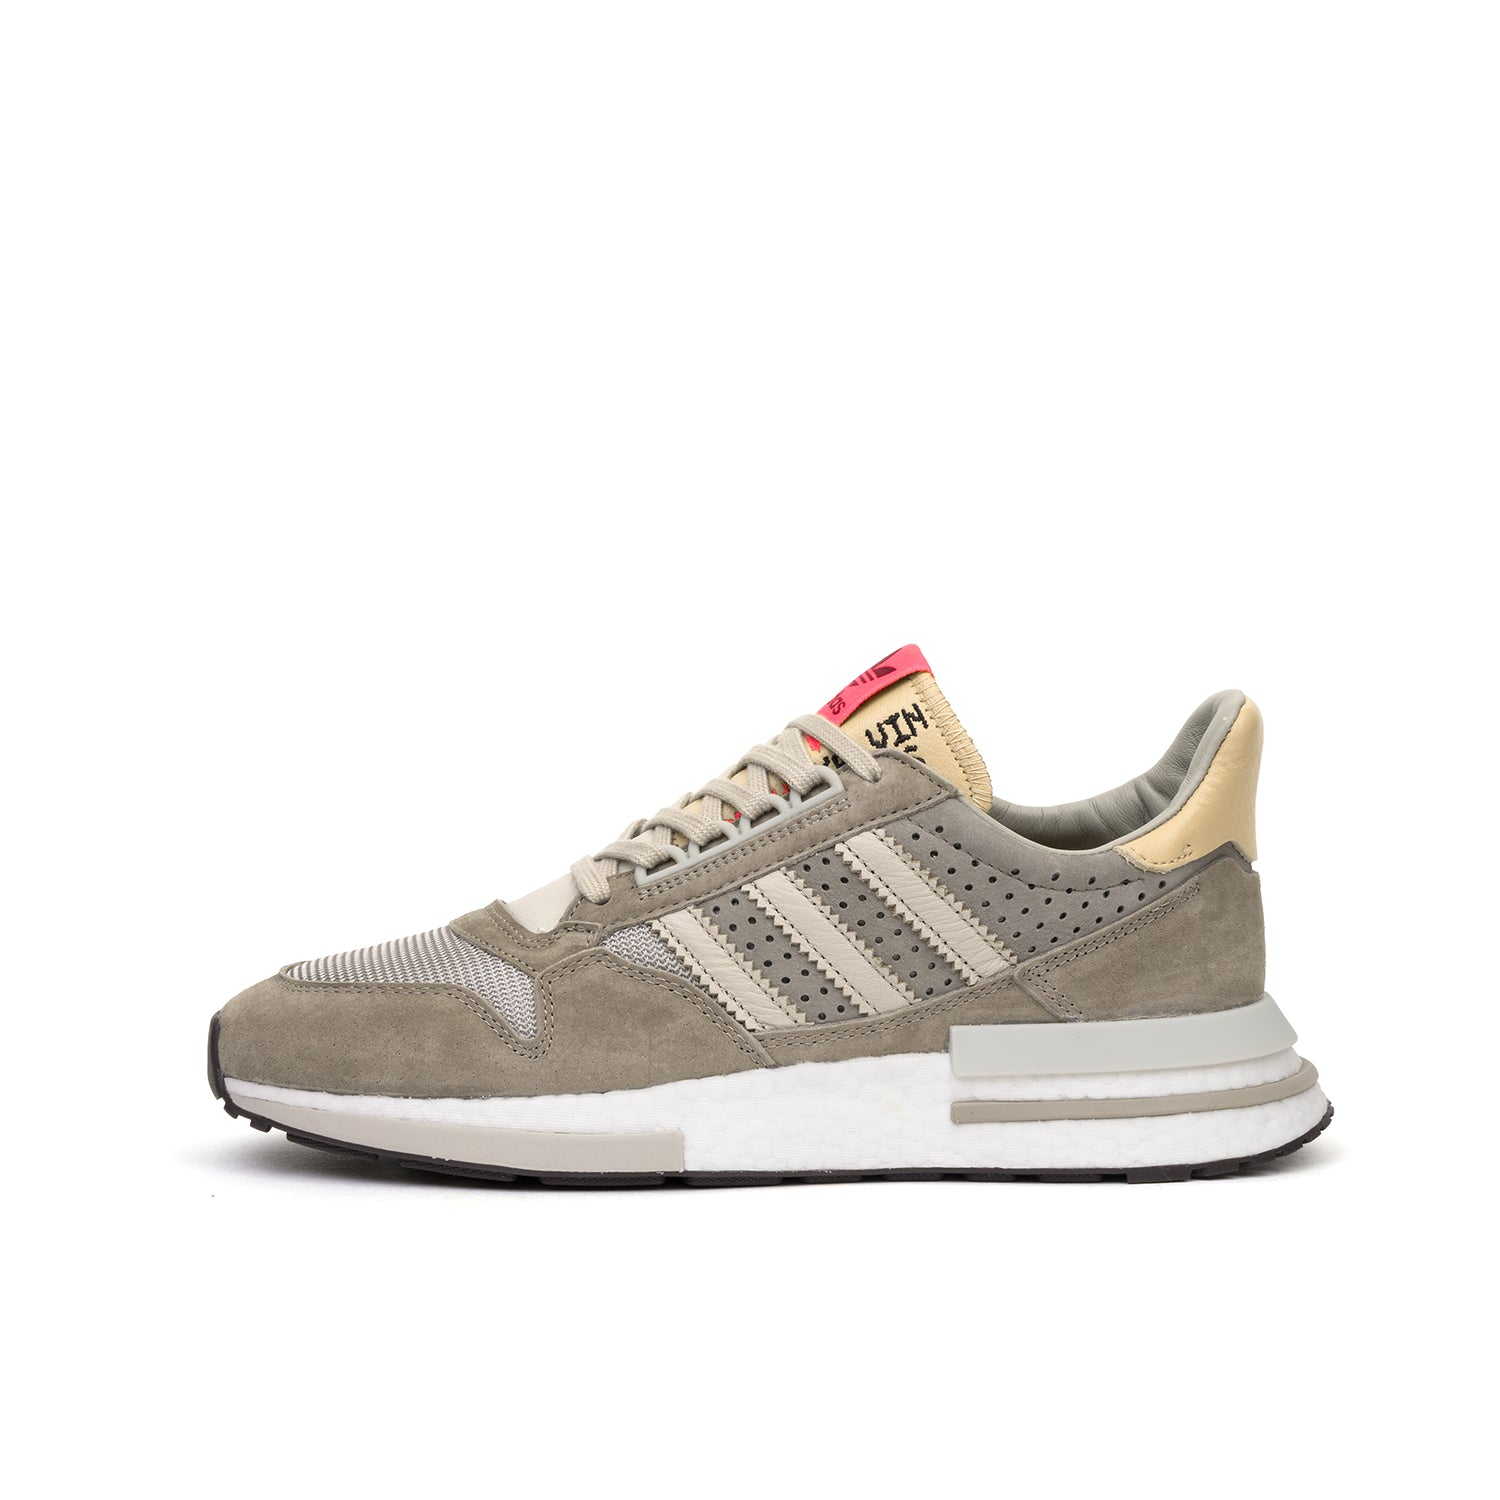 official photos c3fb7 7348e adidas Originals ZX 500 RM 'Simple Brown'